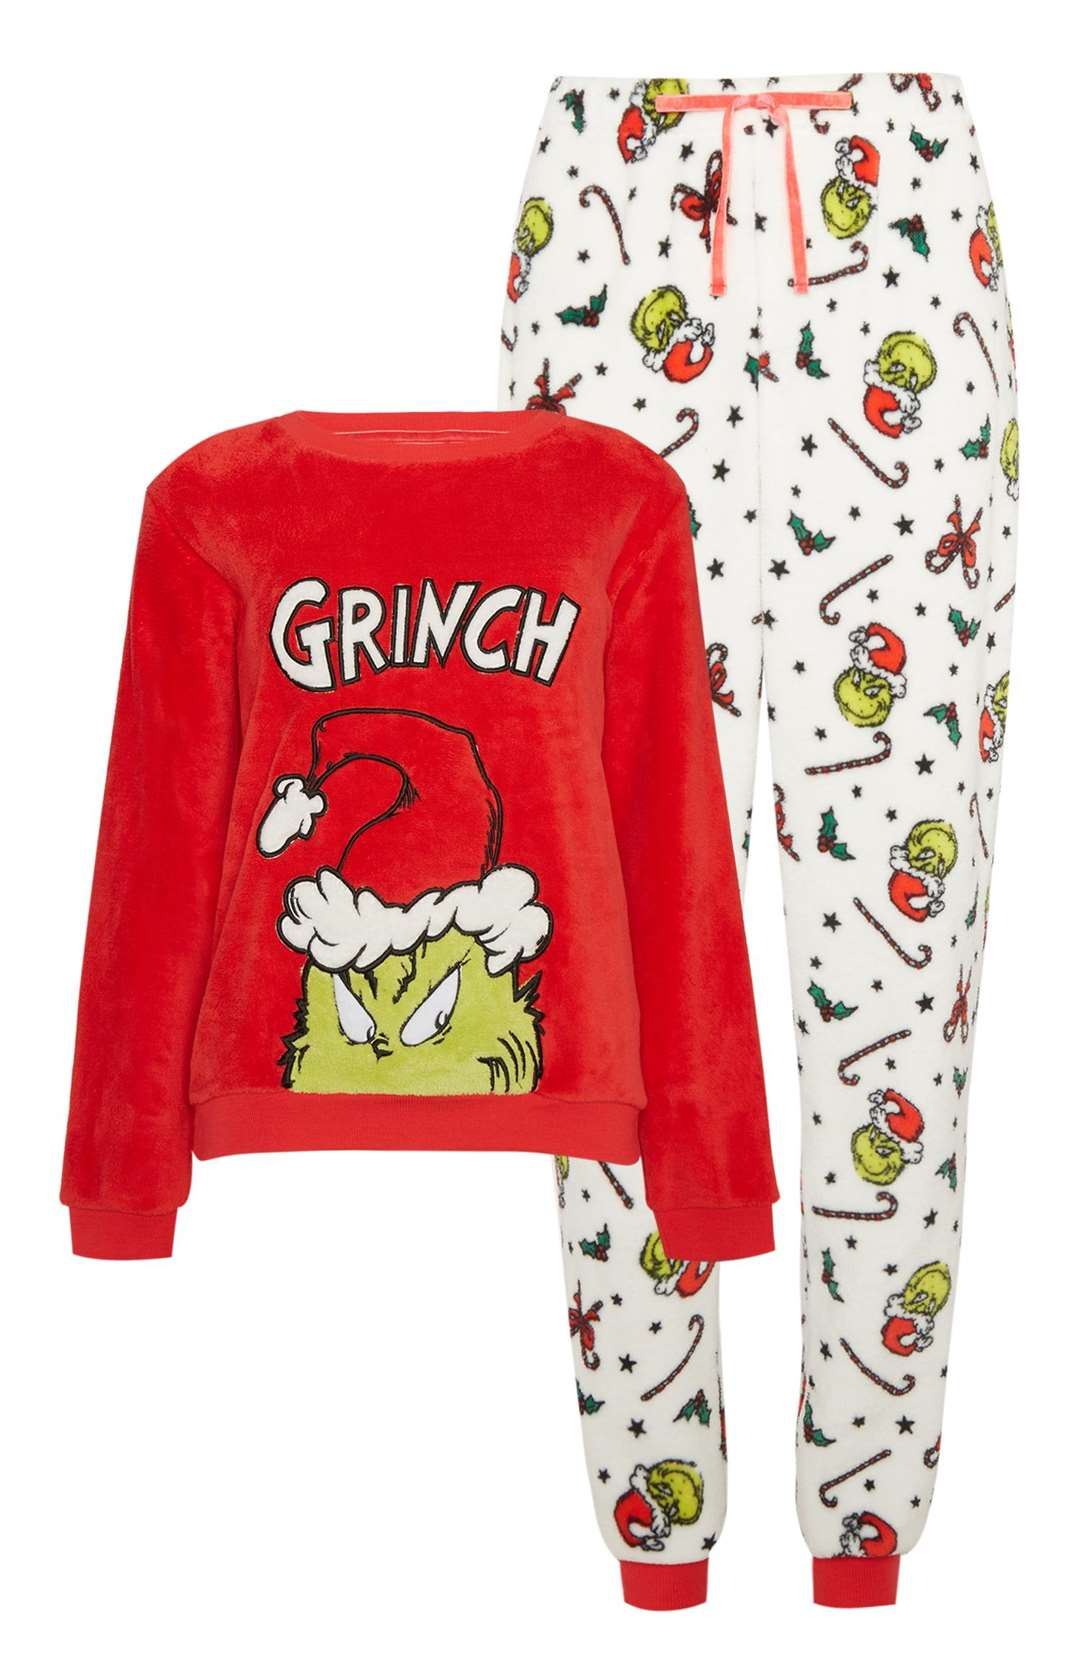 The Grinch Clothing At Primark New Look And M Co